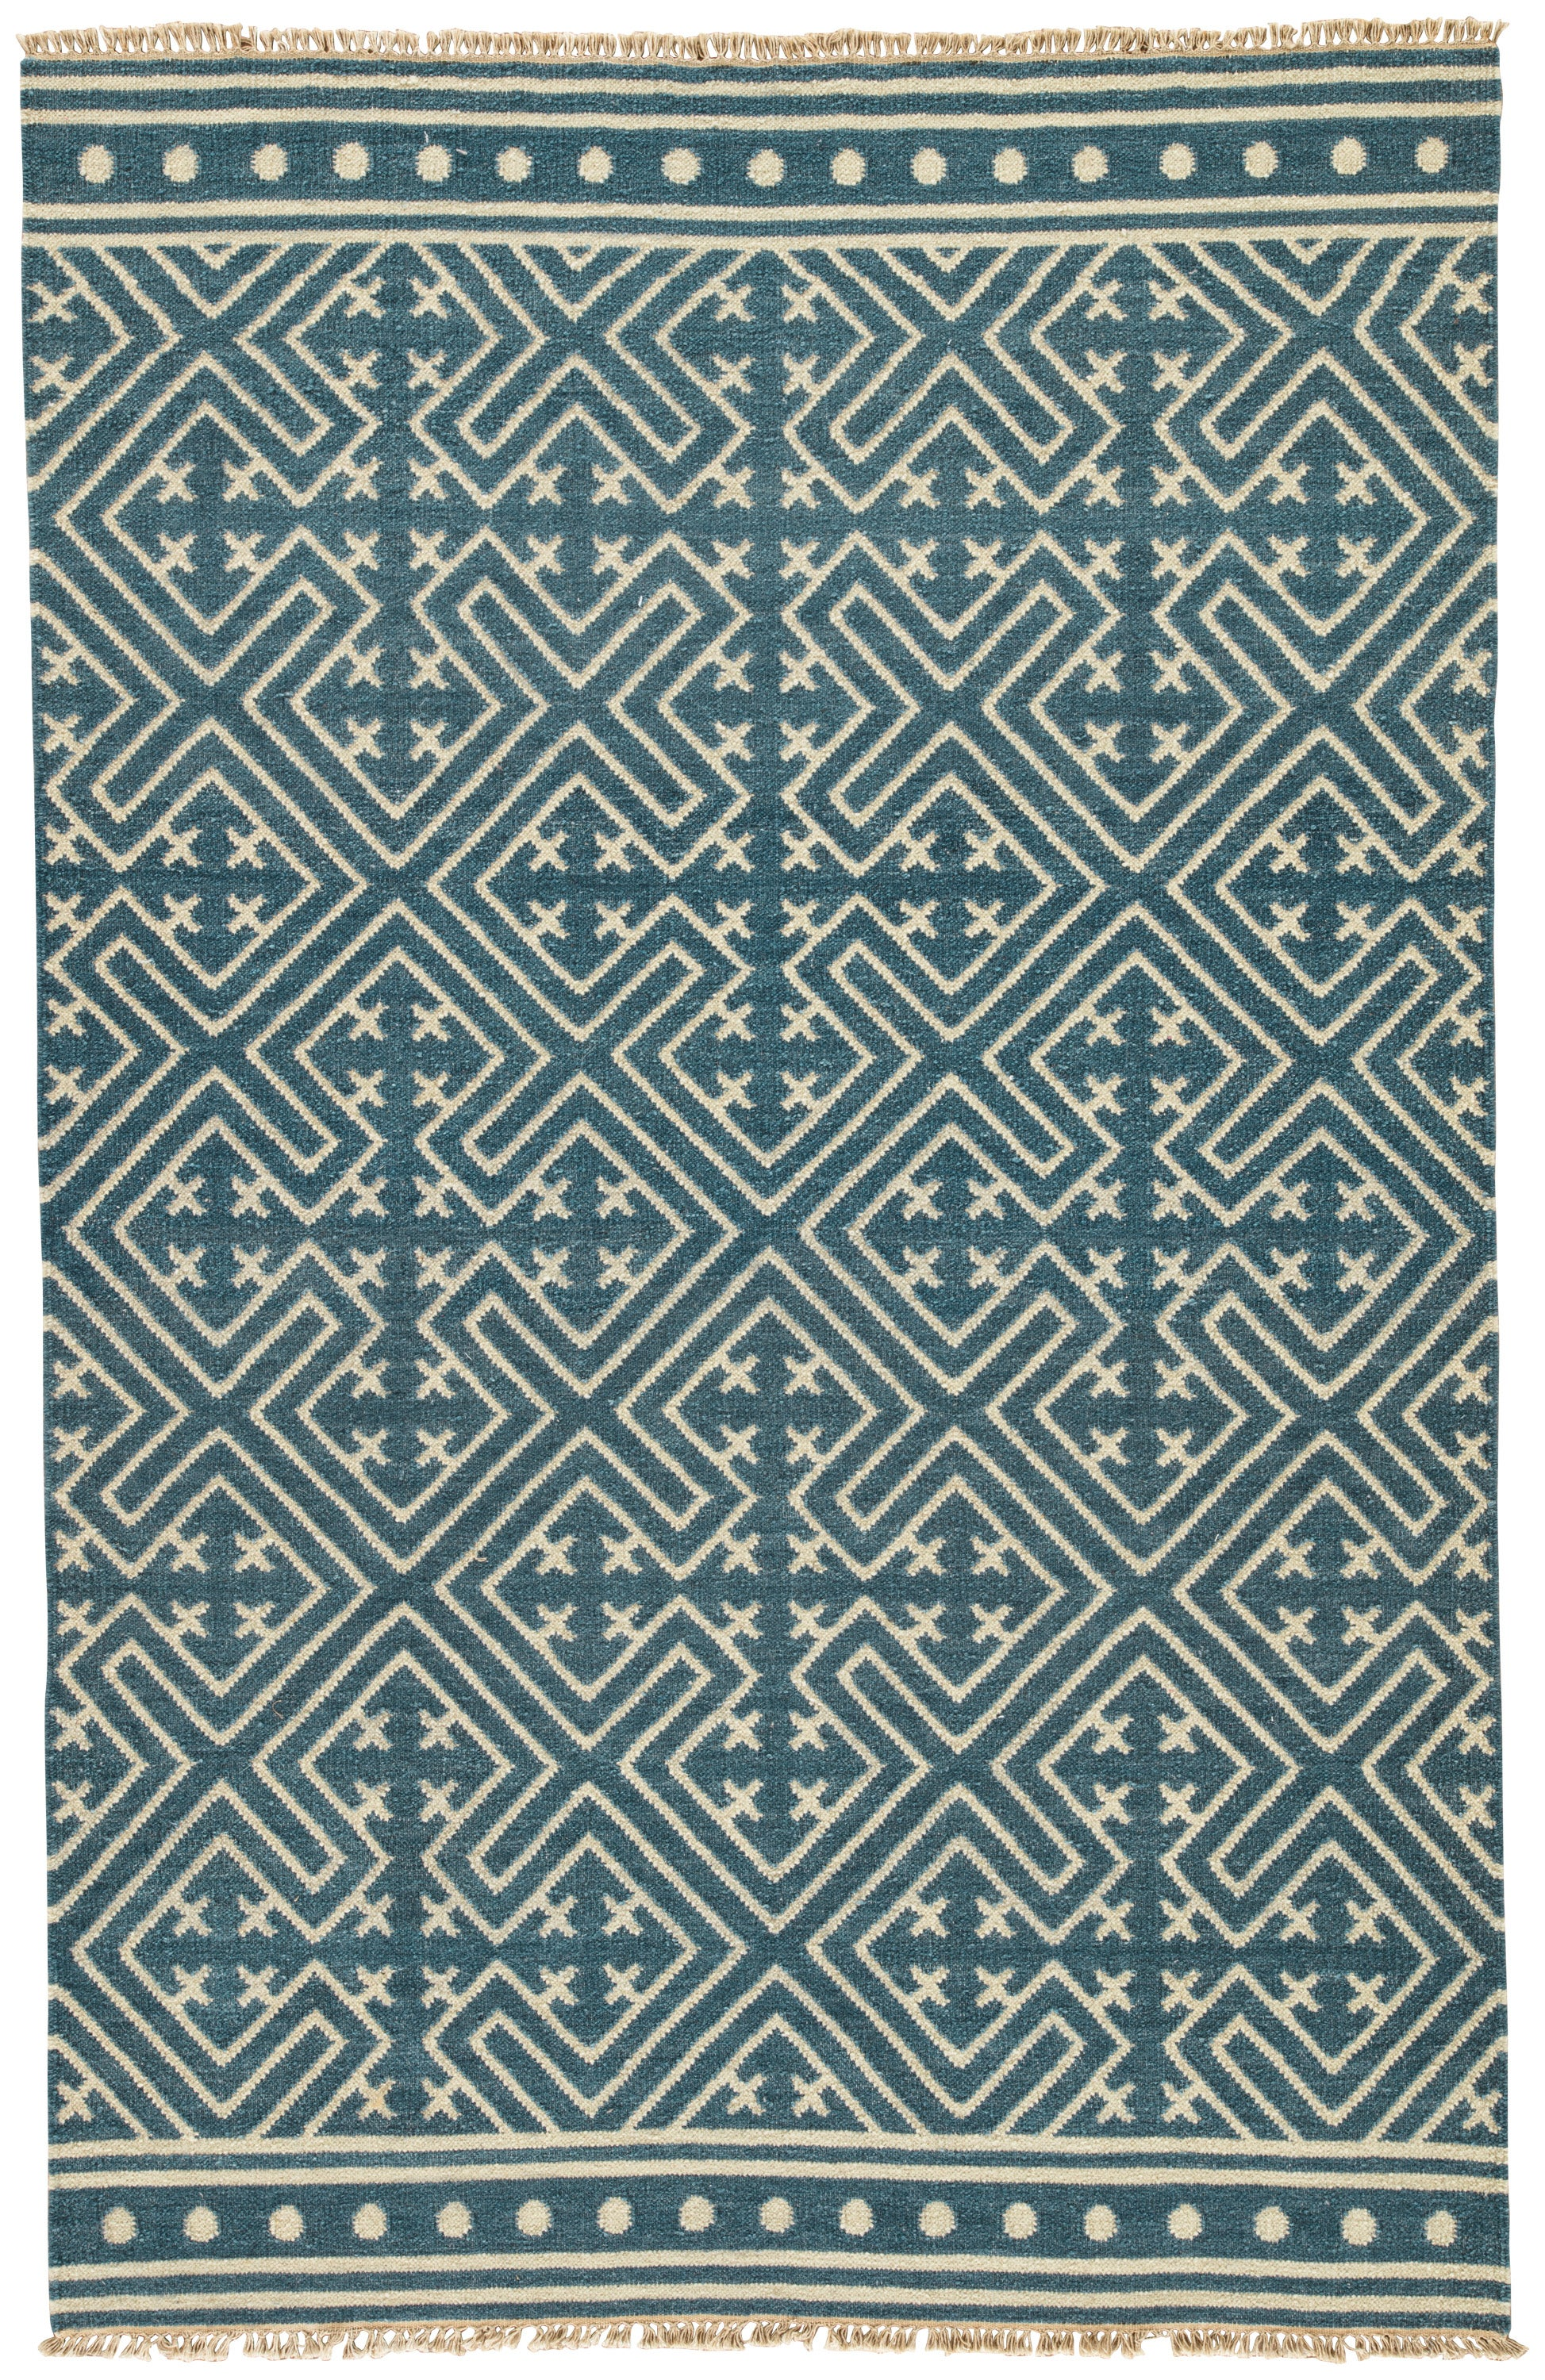 Rectangle Blue Geometric Dhurrie Wool Contemporary recommended for Bedroom, Bathroom, Dining Room, Office, Hallway, Living Room